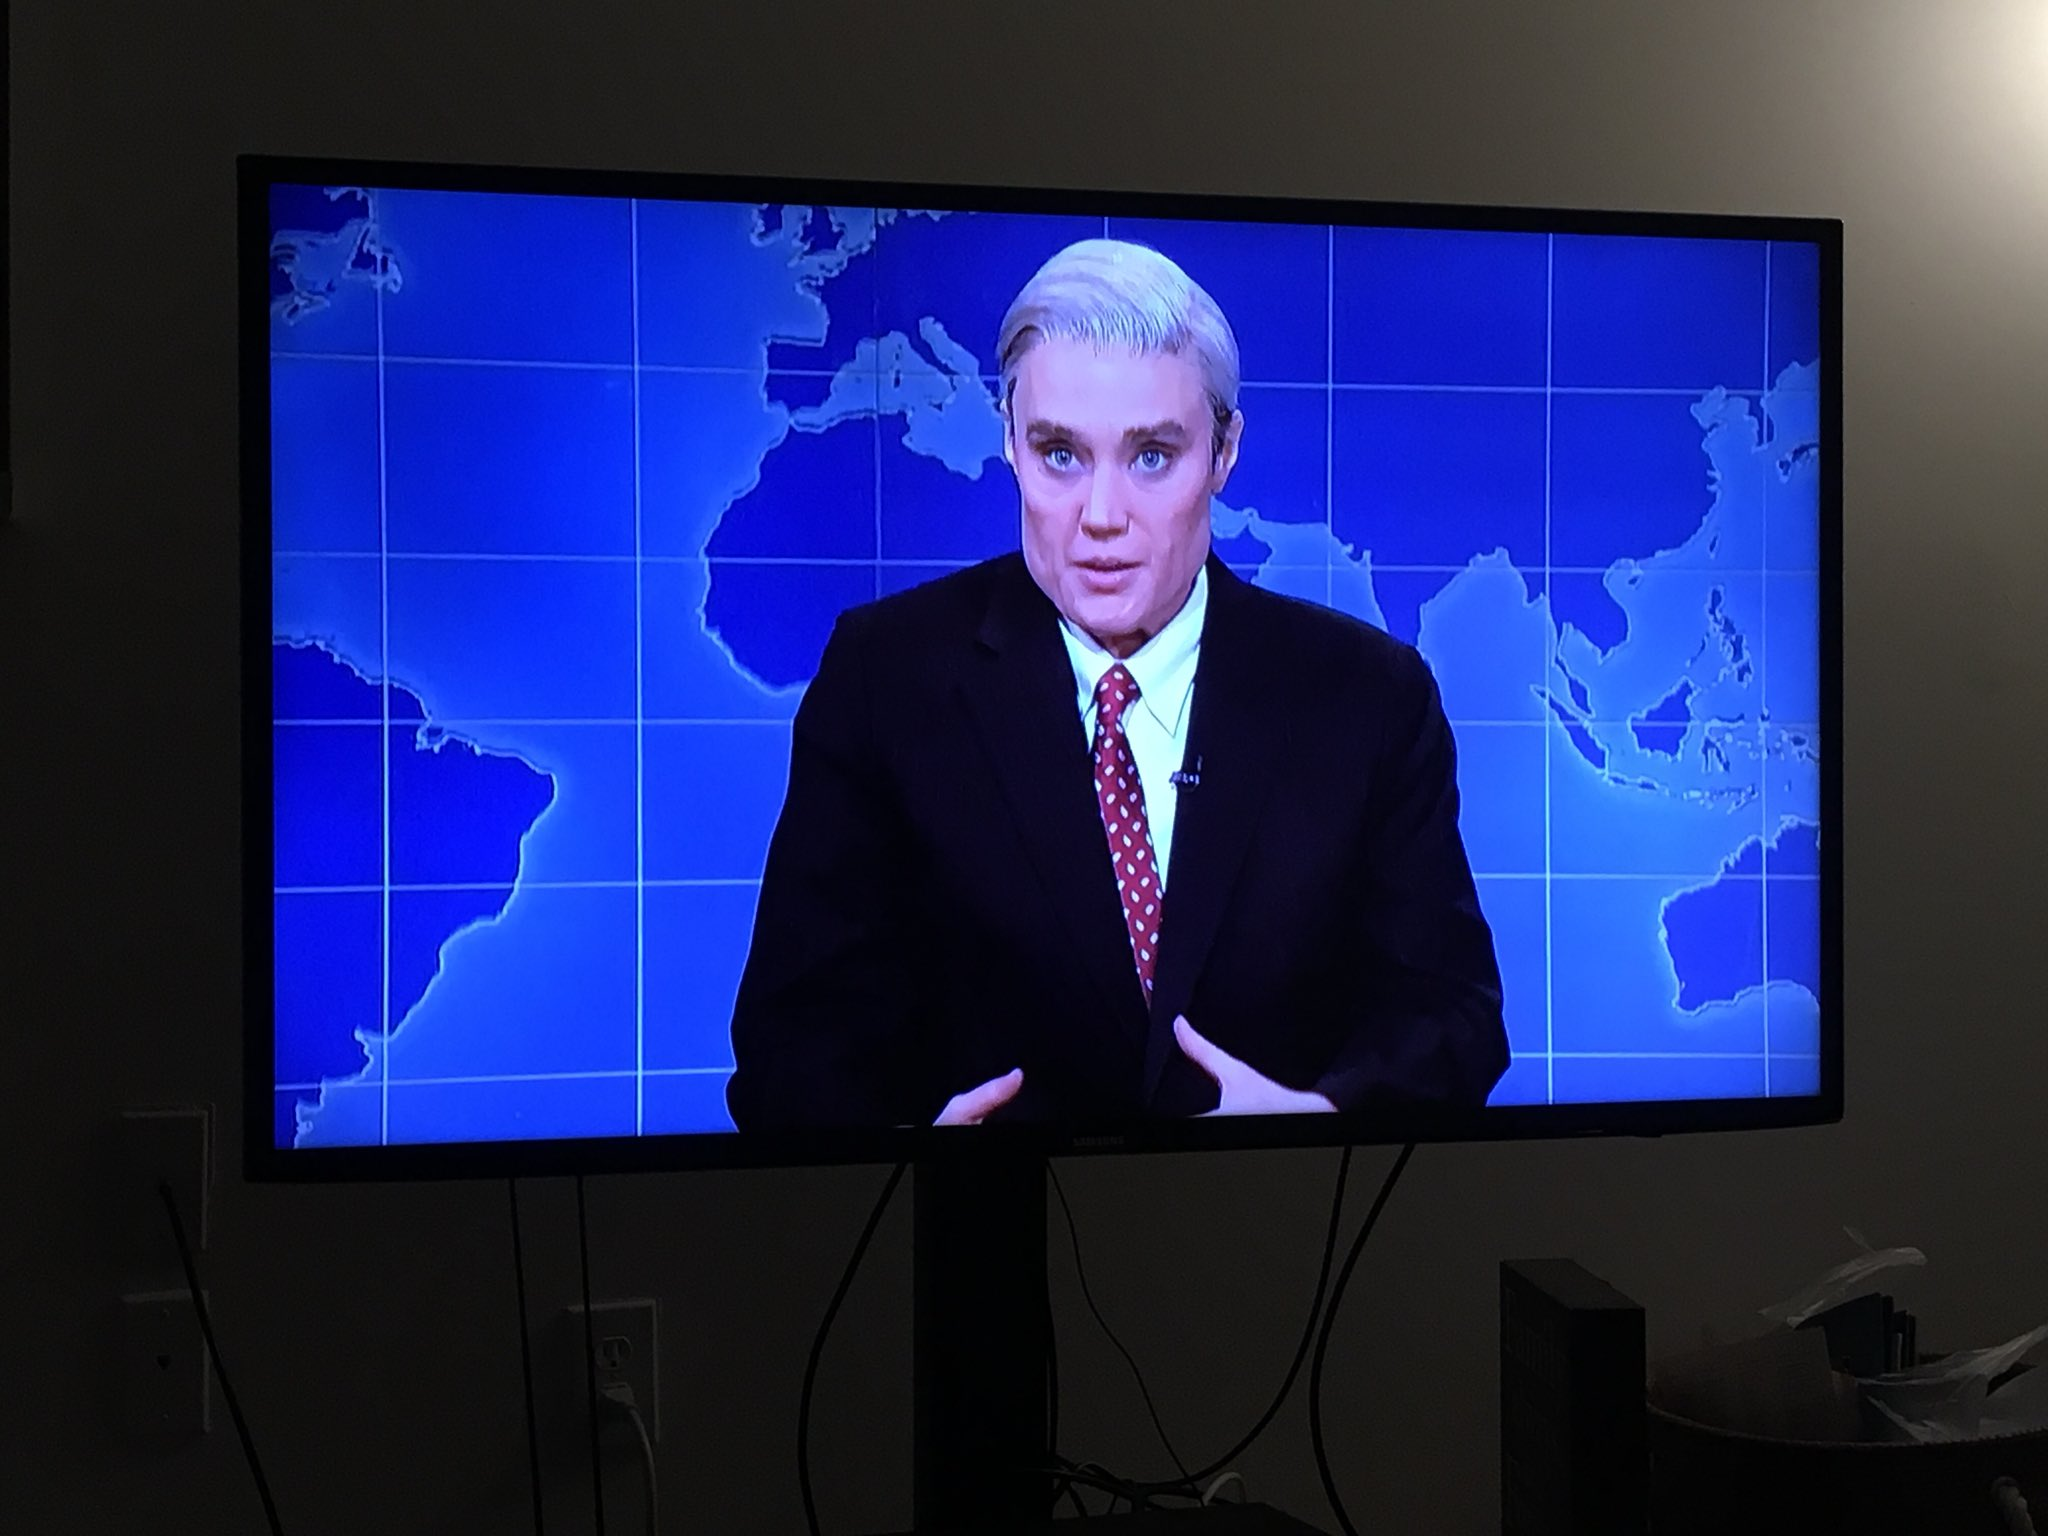 IS THERE ANYTHING KATE MCKINNON CAN'T DO? SHE'S GODDAMN ROBERT MUELLER! #SNL https://t.co/EqgUkoxS79